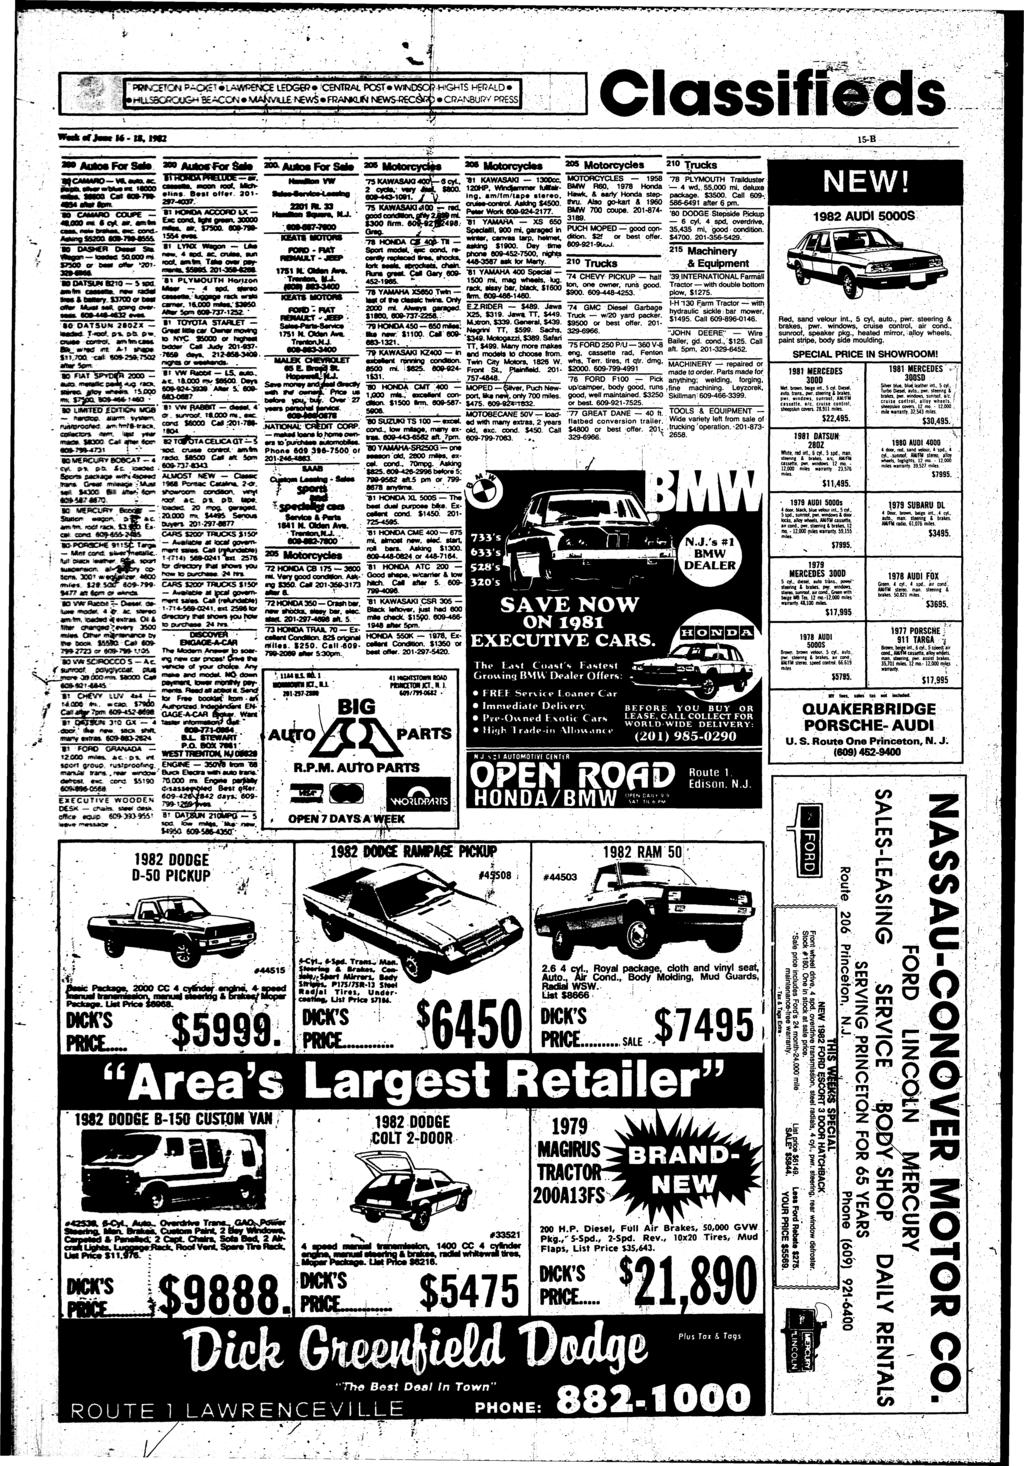 thuid y june 47 1982 rich pipeling photo pdf Clerical Letter of Interest l dg6r c8ntoat post windsor mghts herald ti mcz 15